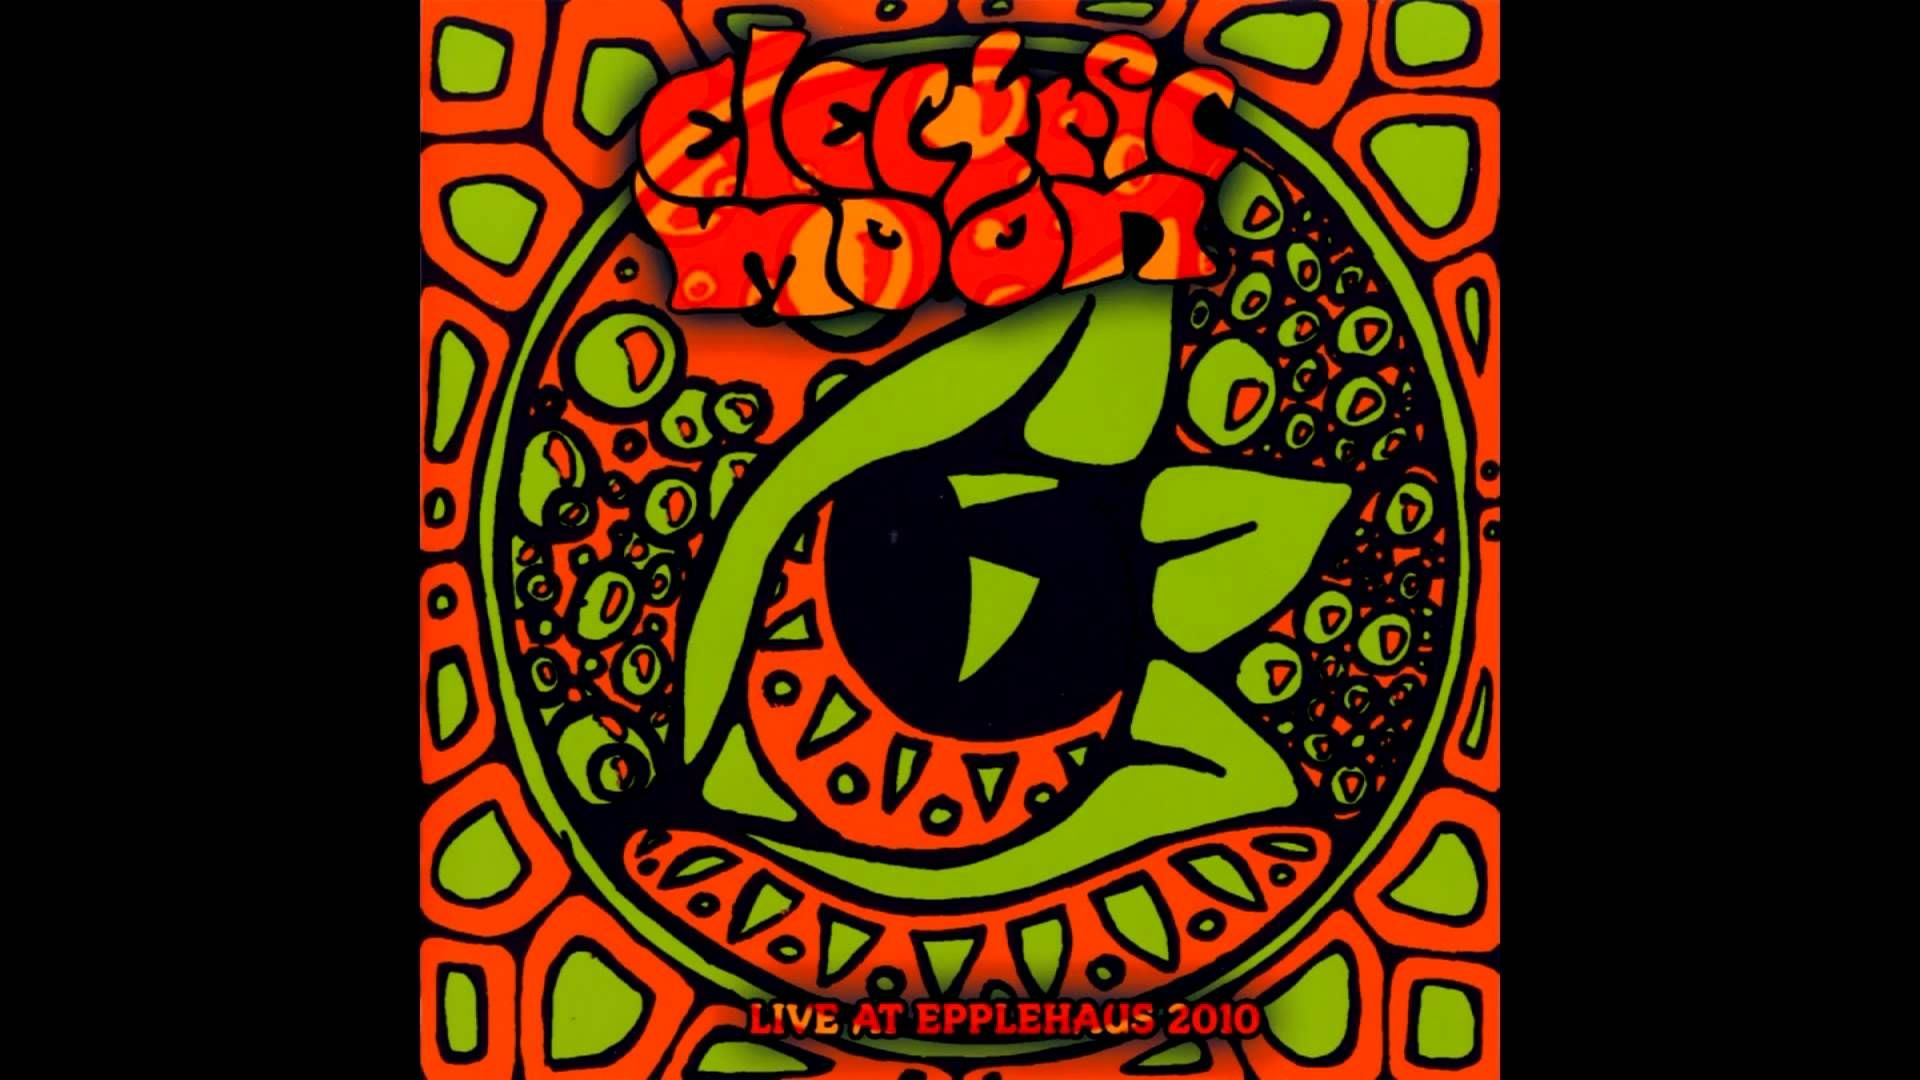 Electric Moon Demoon Hq Youtube Symbols Electricity Moon